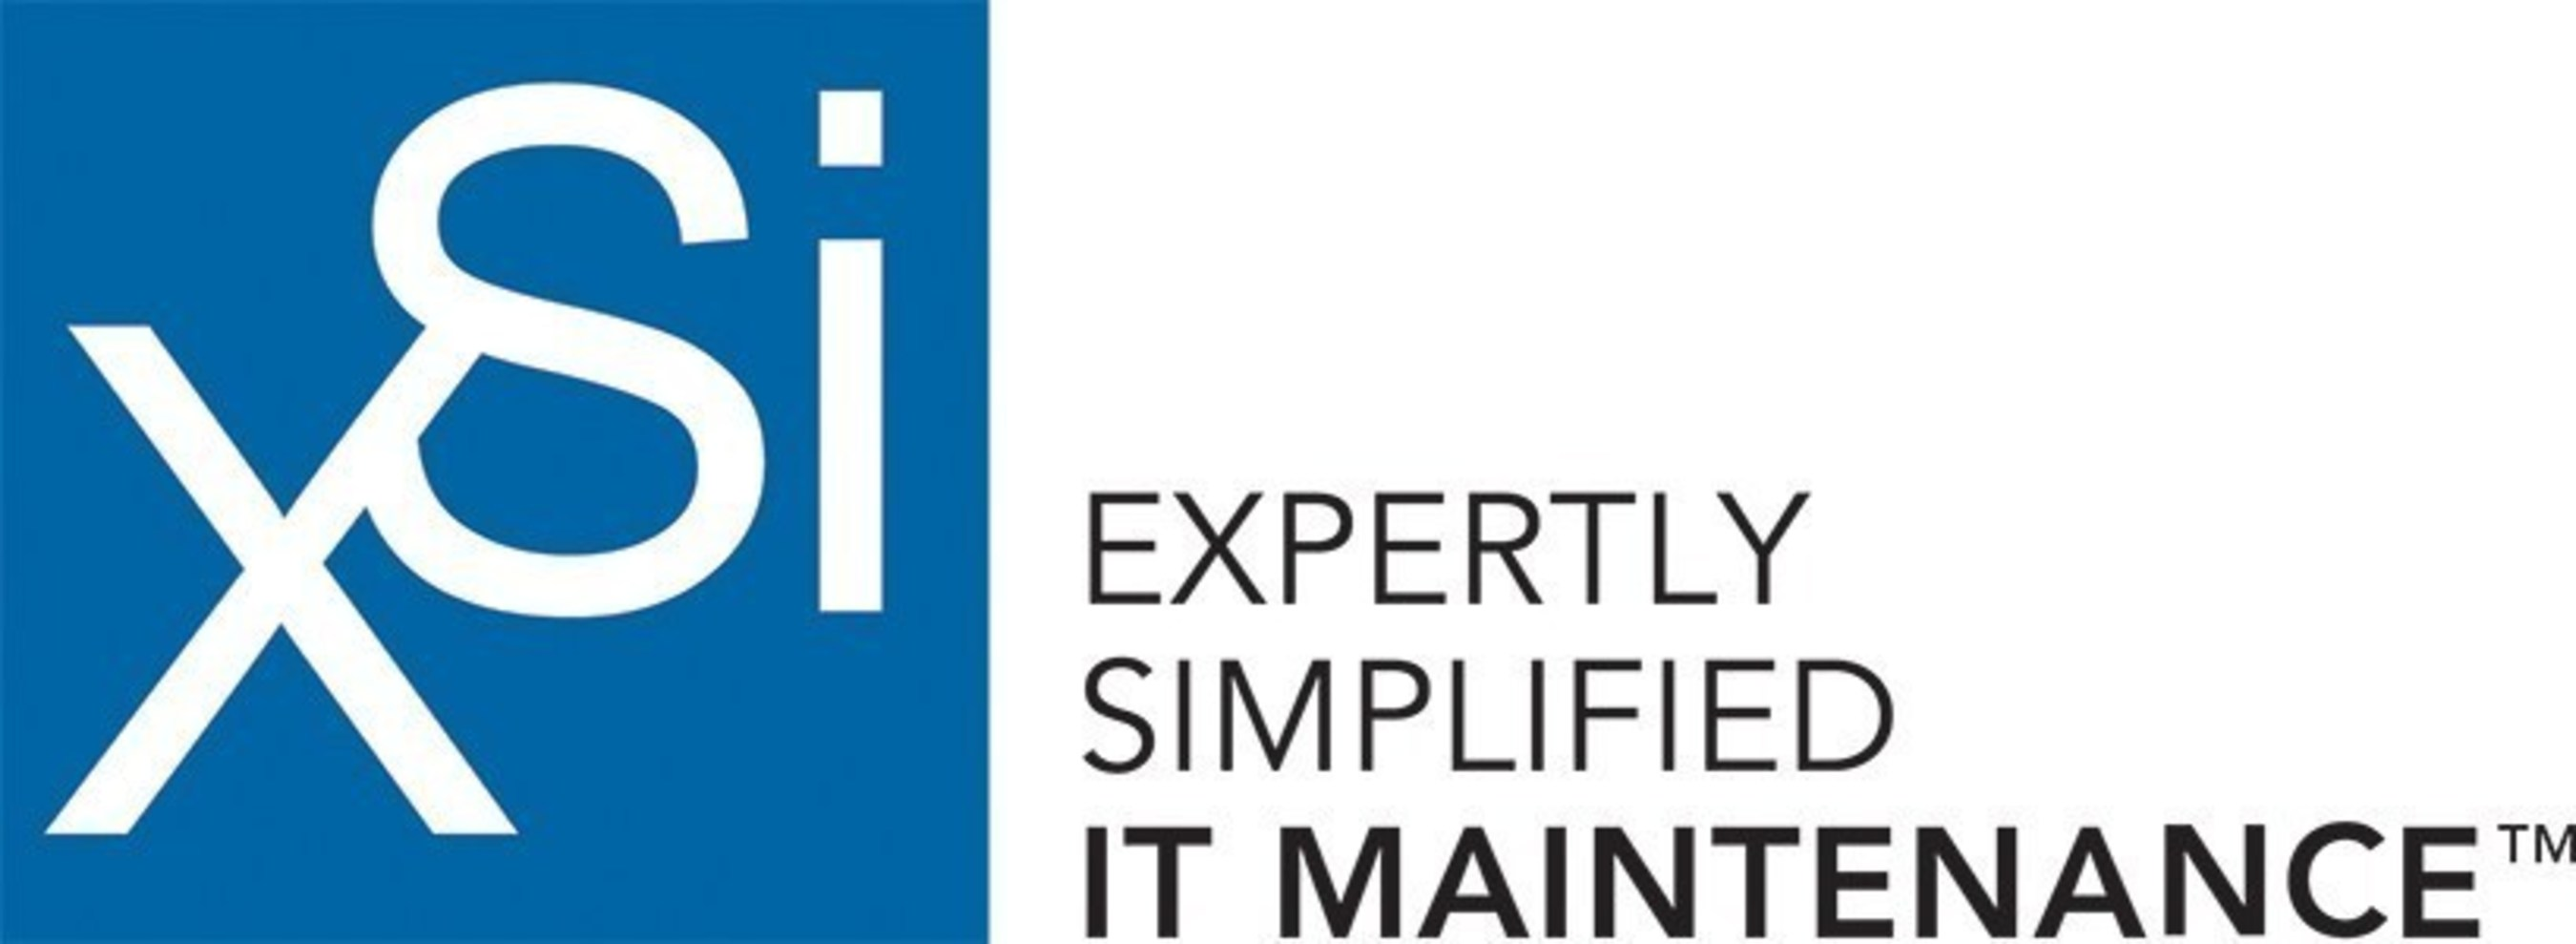 XS International - Expertly Simplified Third Party Maintenance